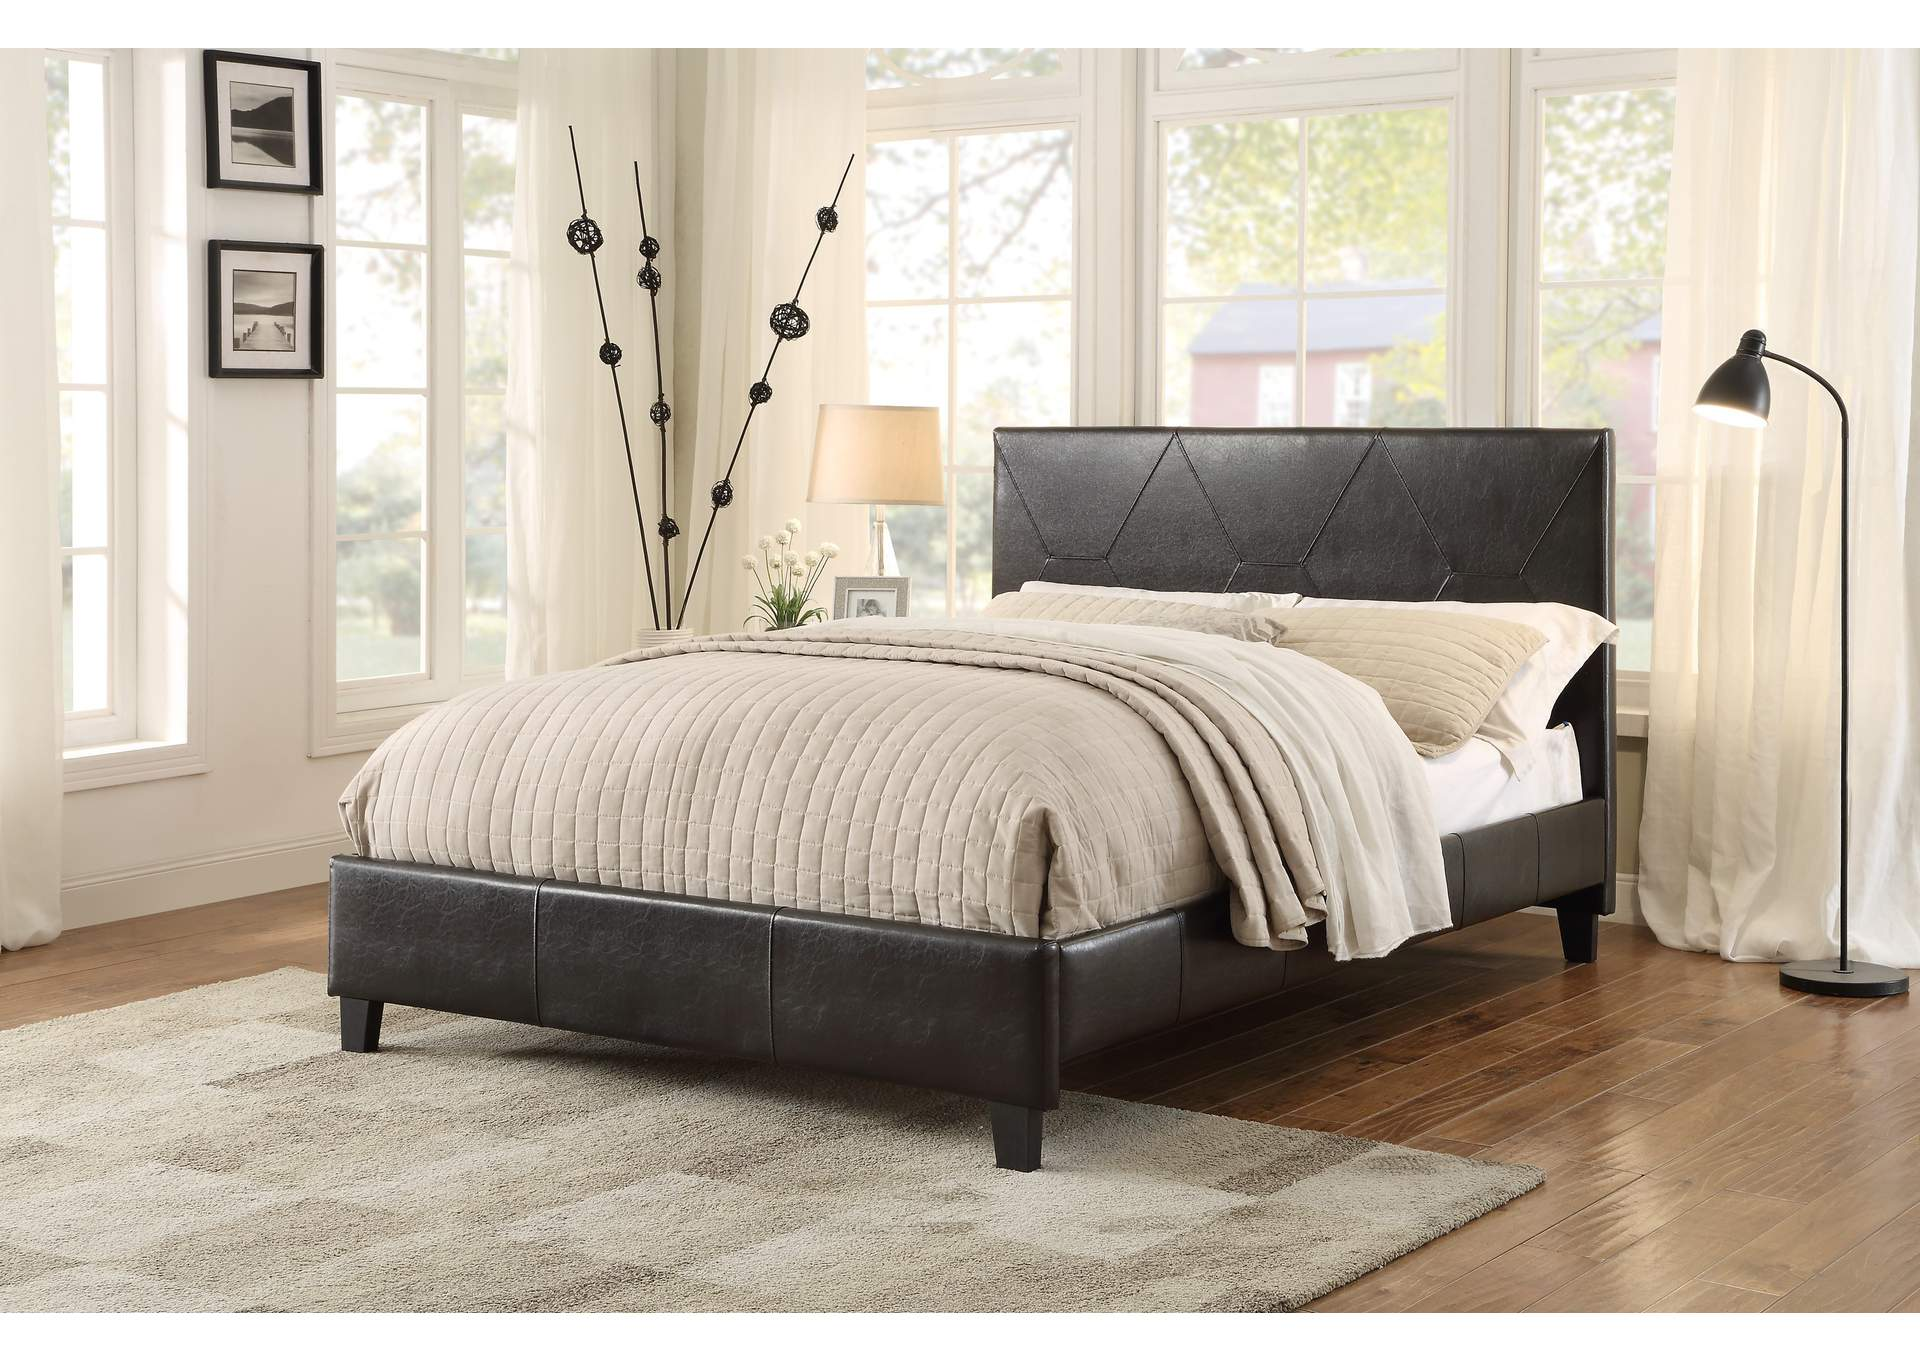 Deleon Dark Brown Upholstered Eastern King Platform Bed,Homelegance